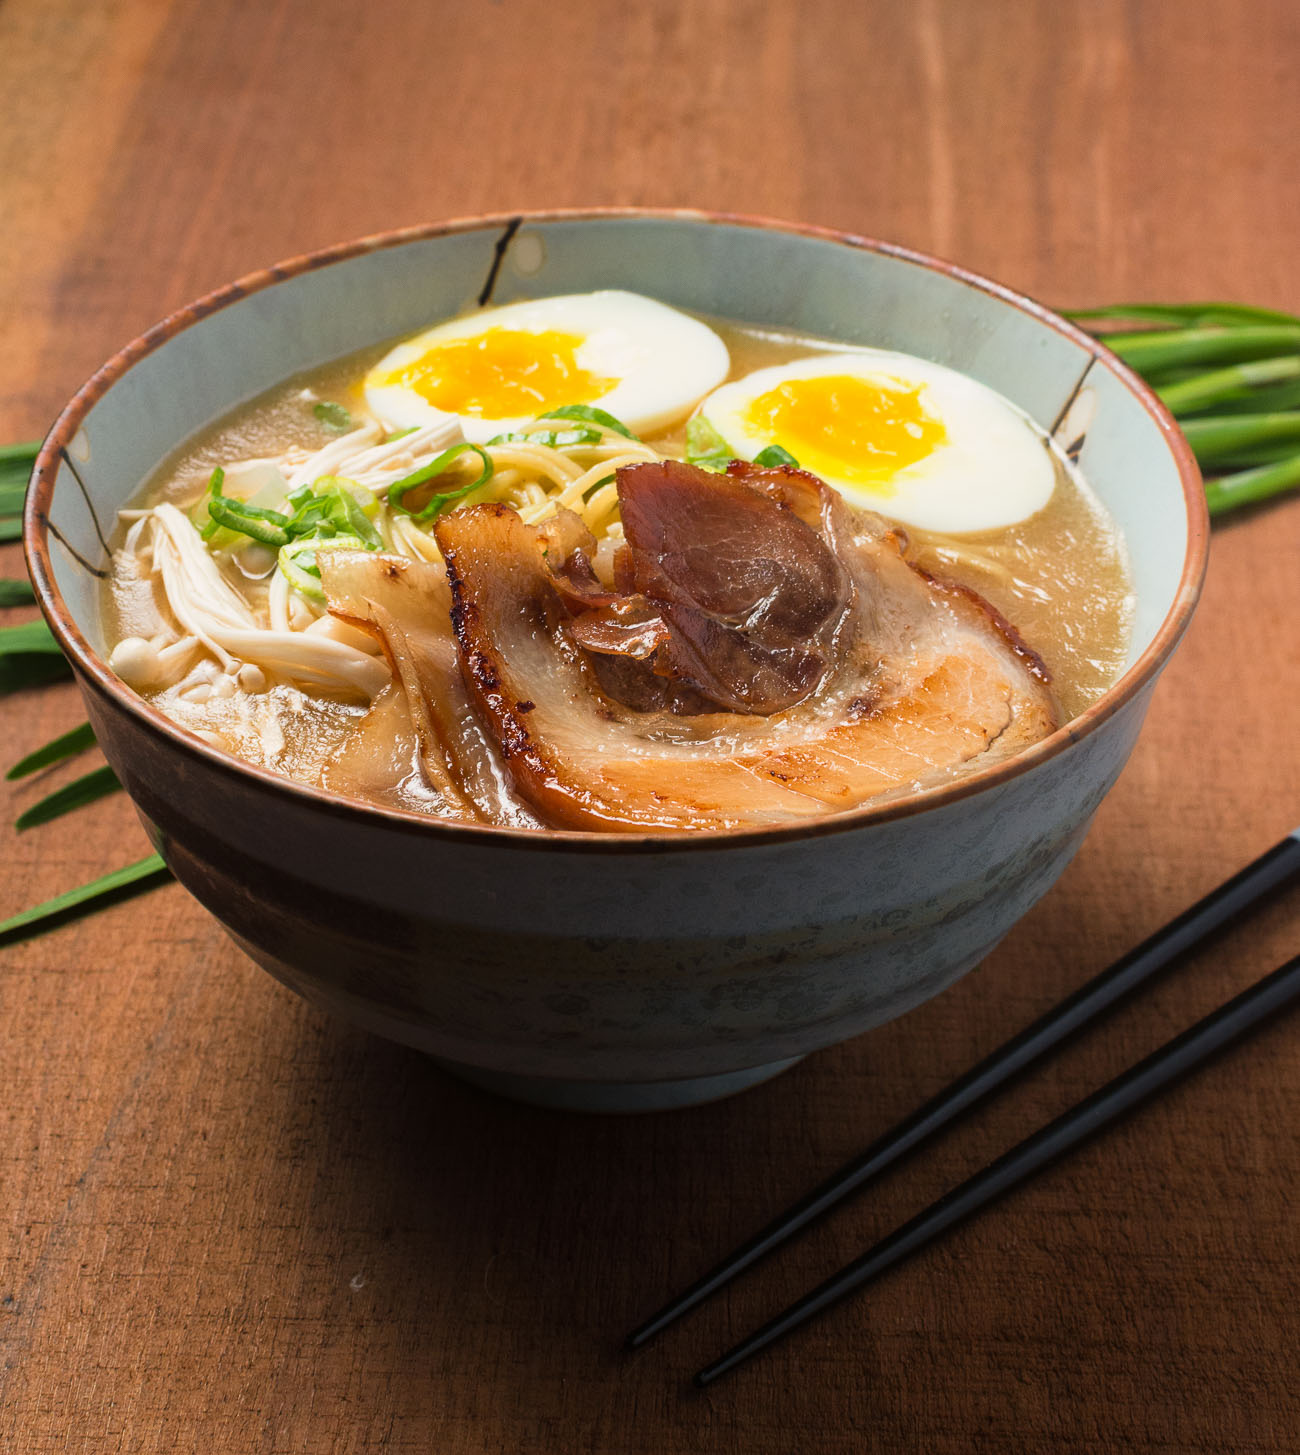 You can make tonkotsu ramen that's as the best ramen joint in town.